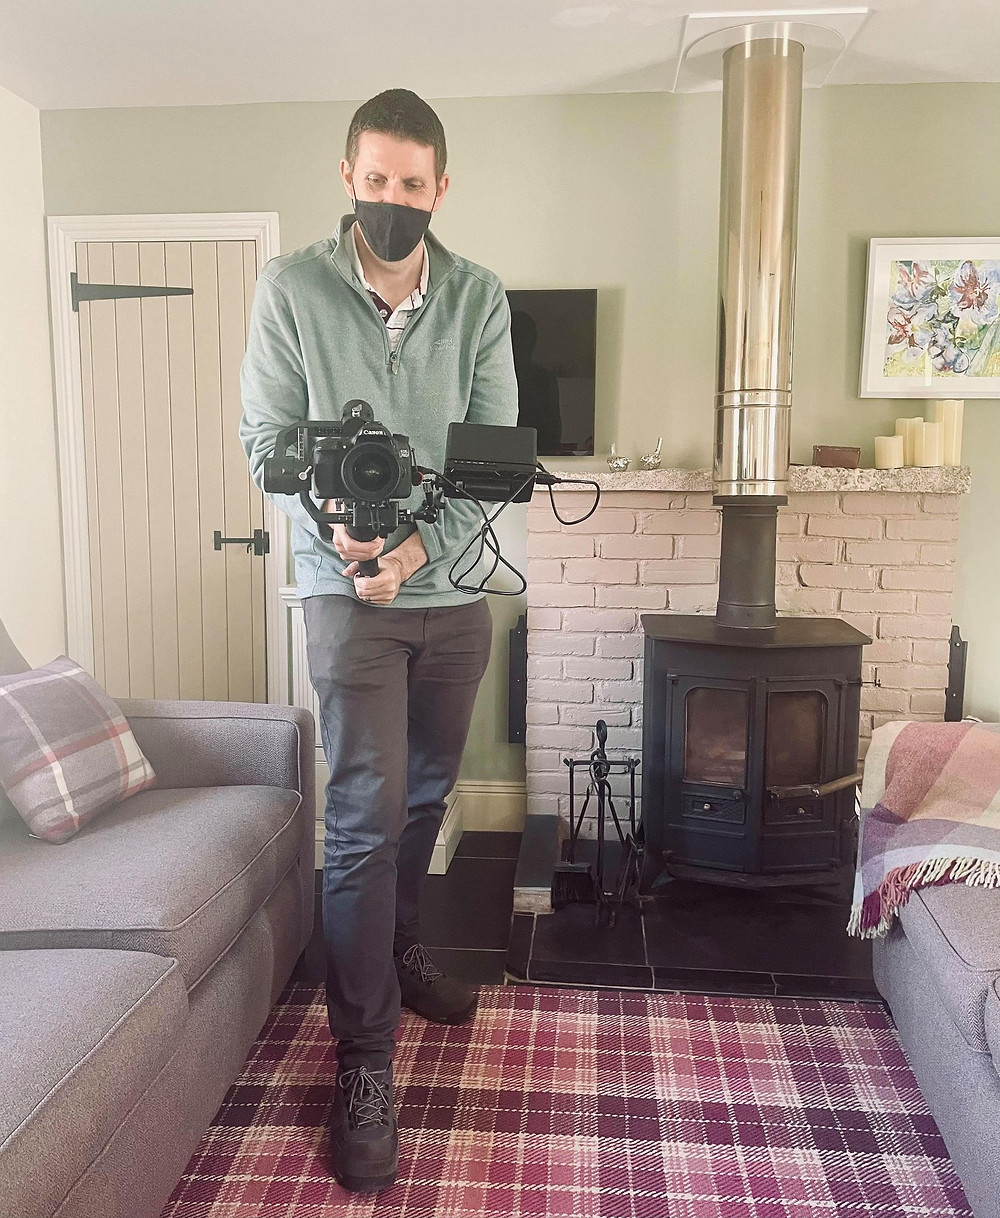 Behind the scenes shot of Neil holding a big recording camera filming Ross